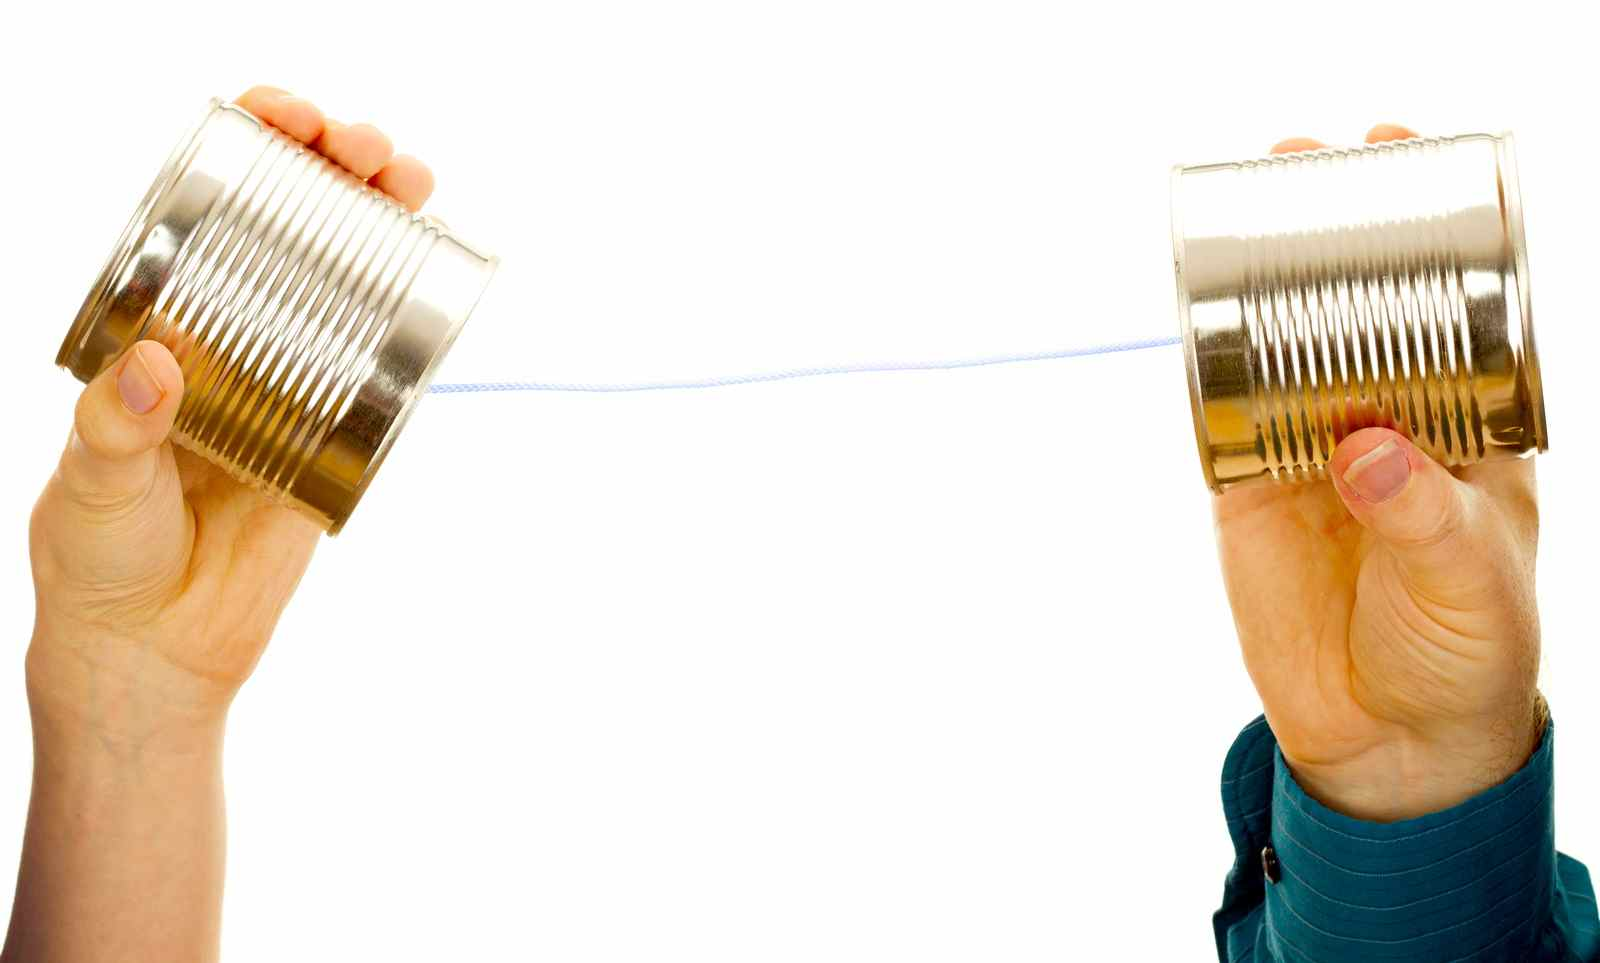 Two Hands Holding Tin Cans Connected by String.jpg